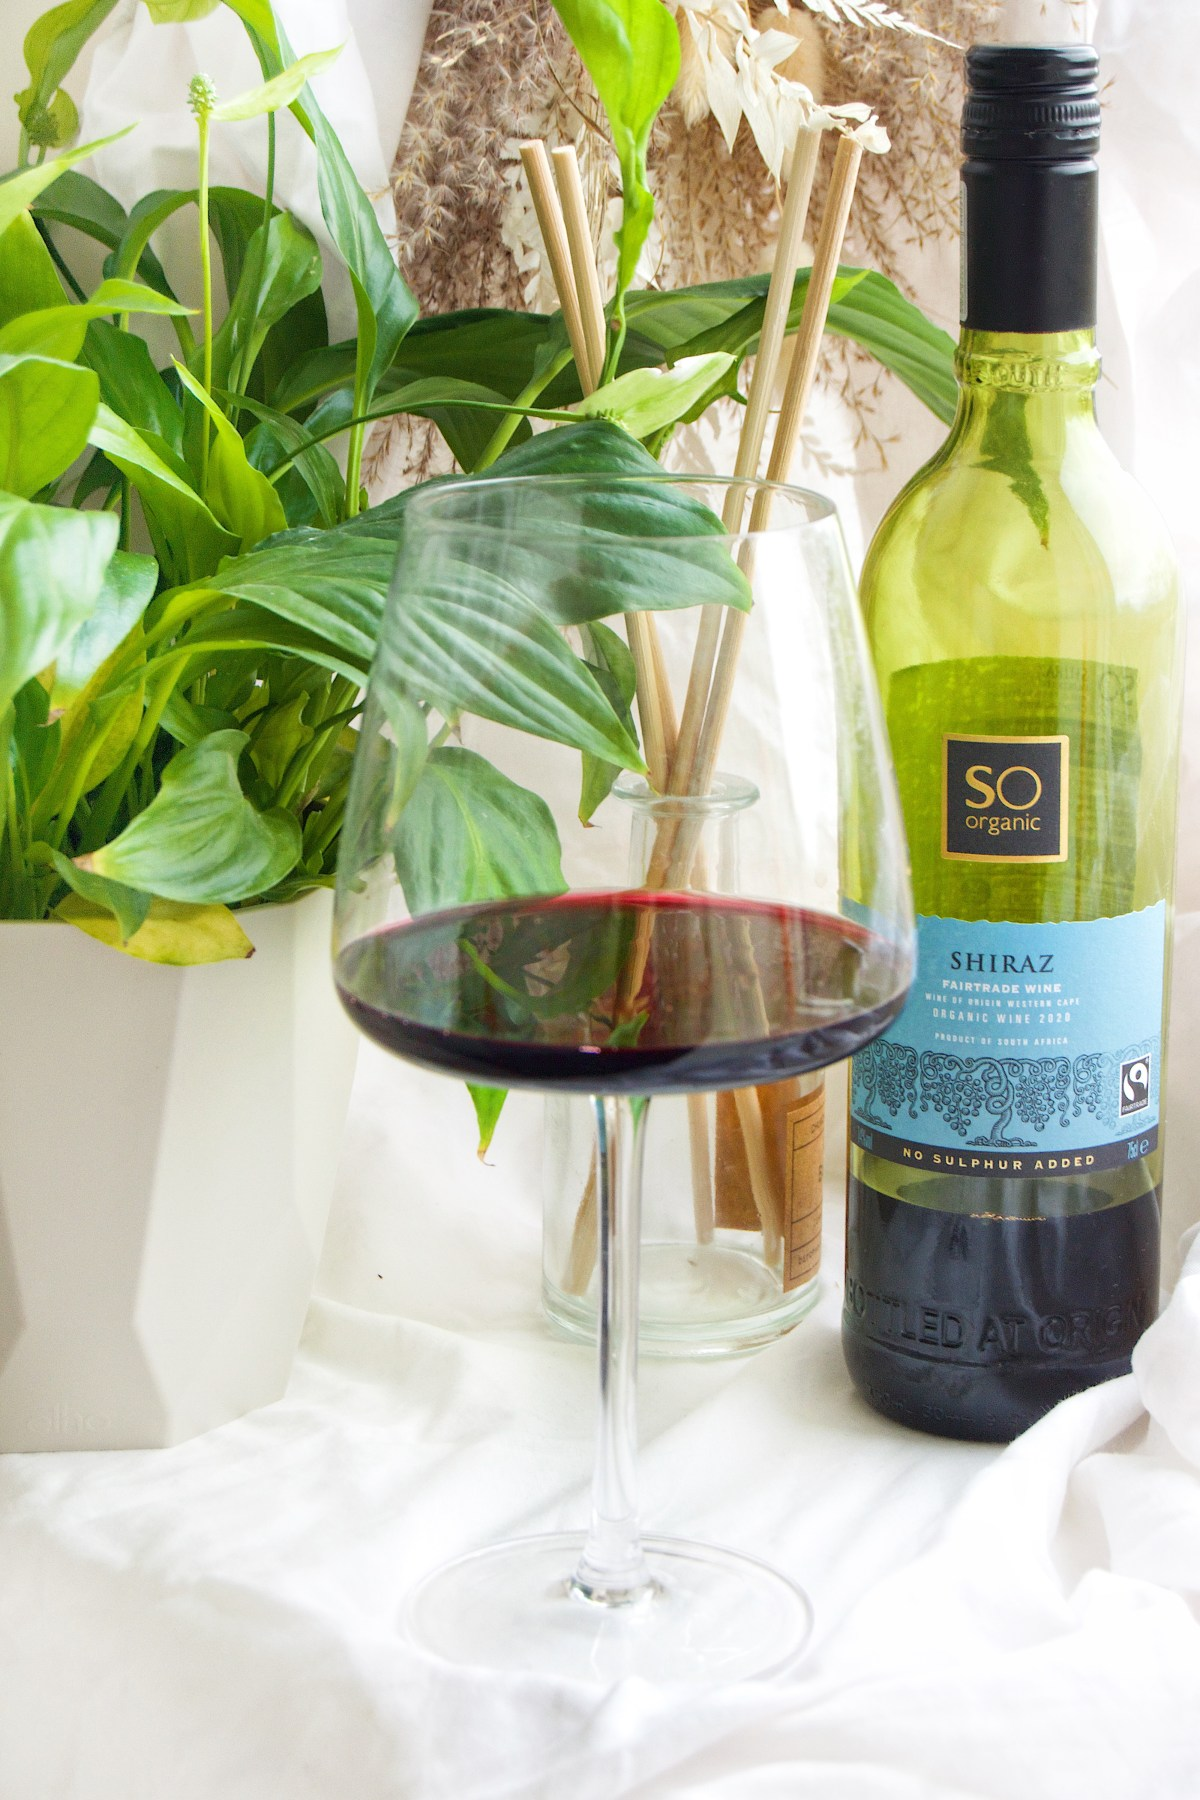 Glass of red wine, with wine bottle in background and a green plant.